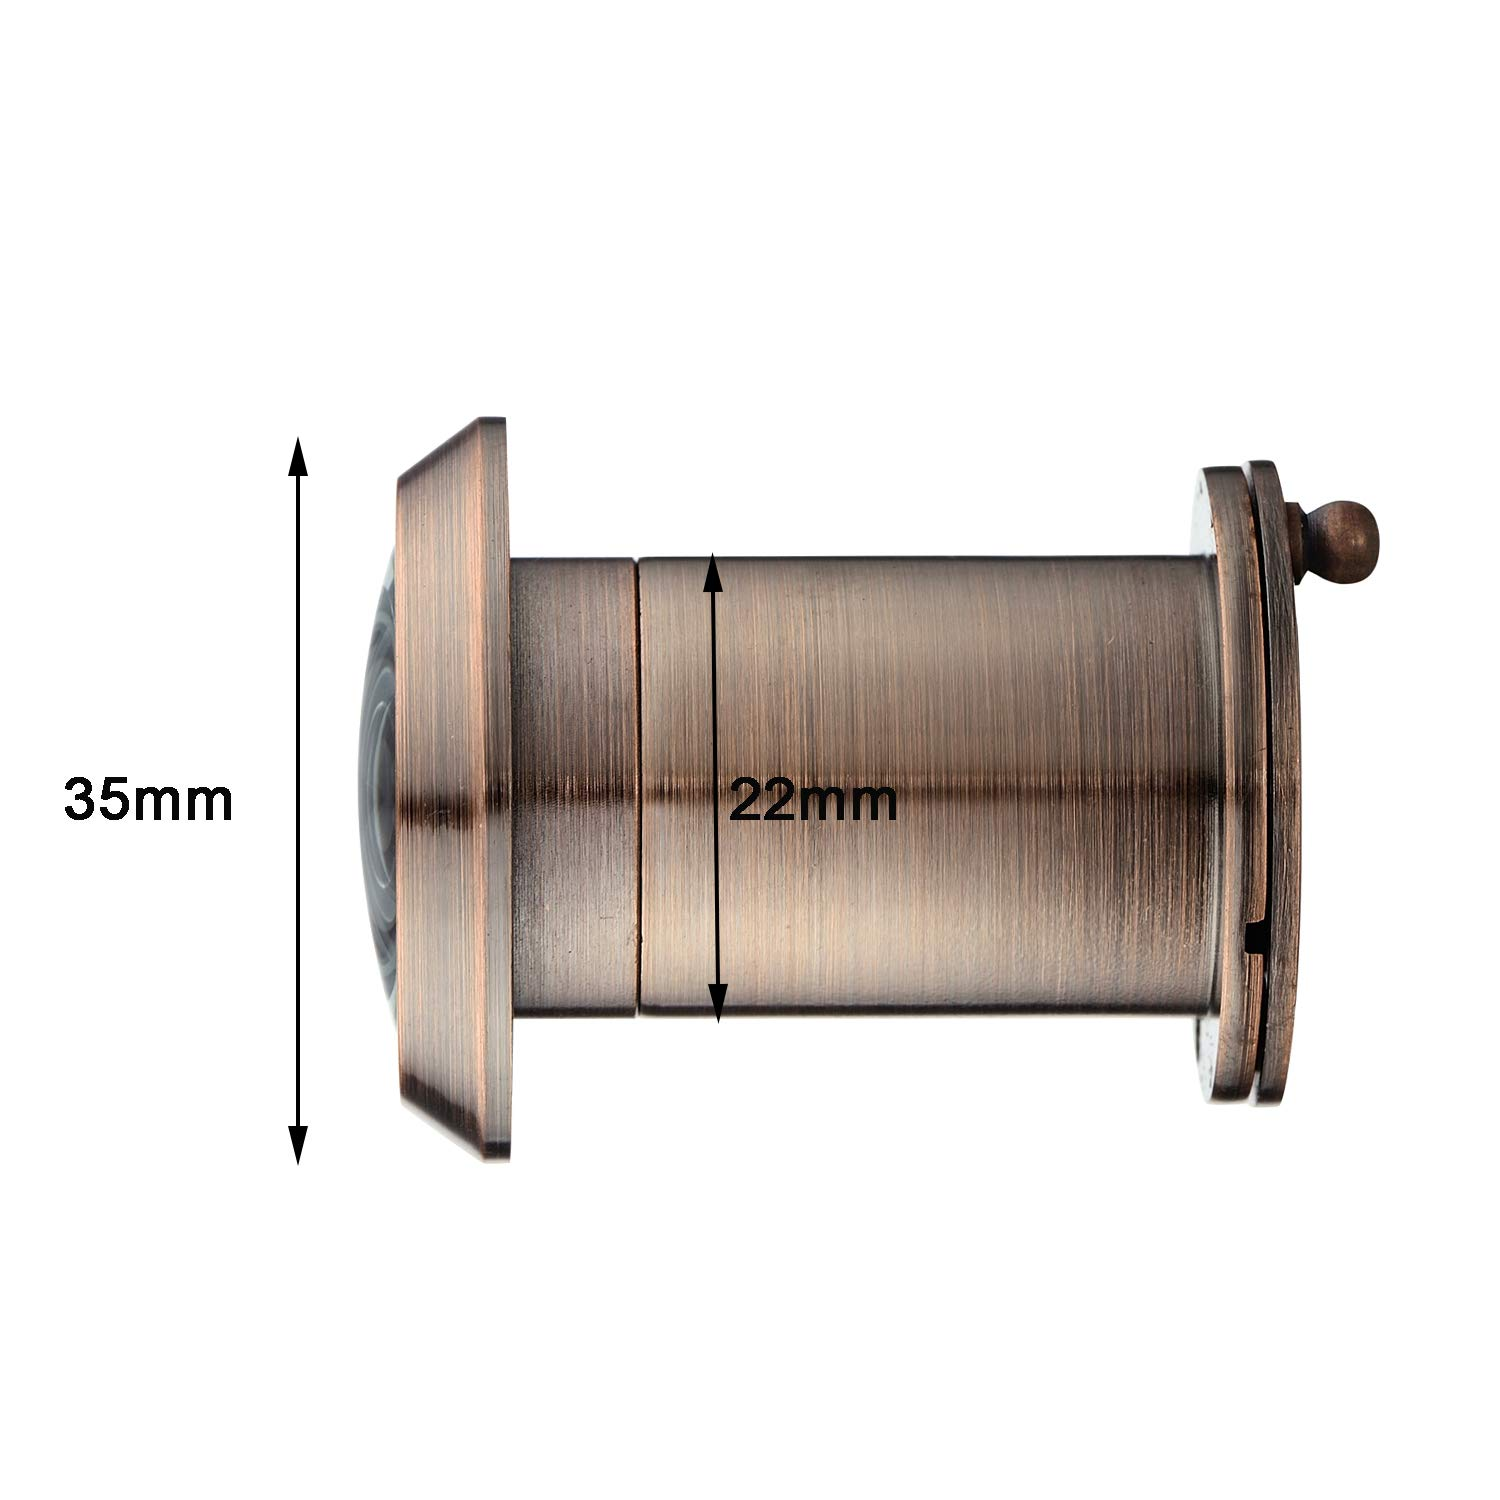 TOGU 3522 YG-AC Brass UL Listed 220-degree Door Viewer with Heavy Duty Privacy Cover for 1-3//8 to 2-1//6 Doors Antique Copper Finish